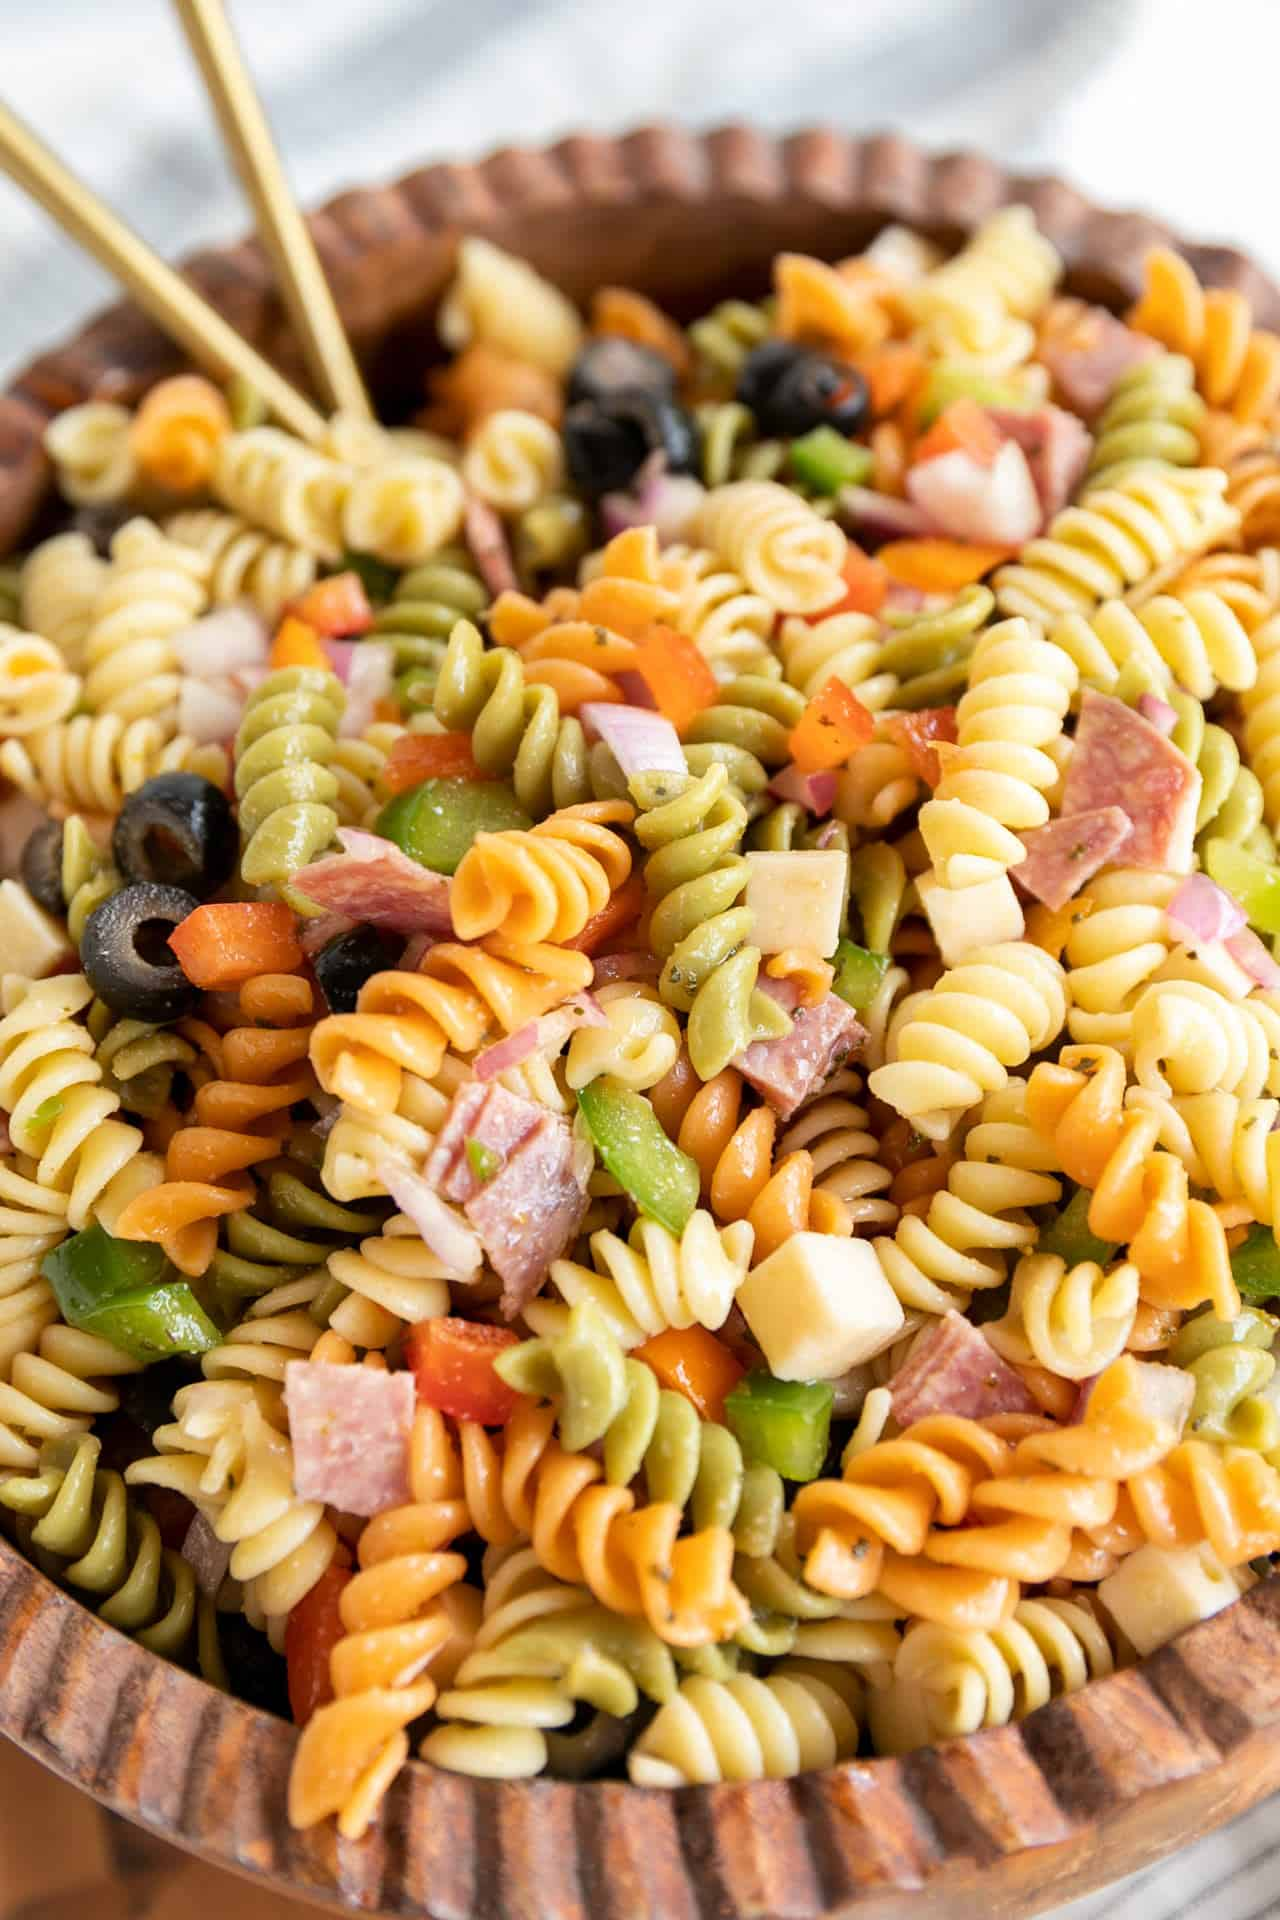 up close ready to serve Antipasto Pasta Salad up close with gold serving spoons in a wood bowl